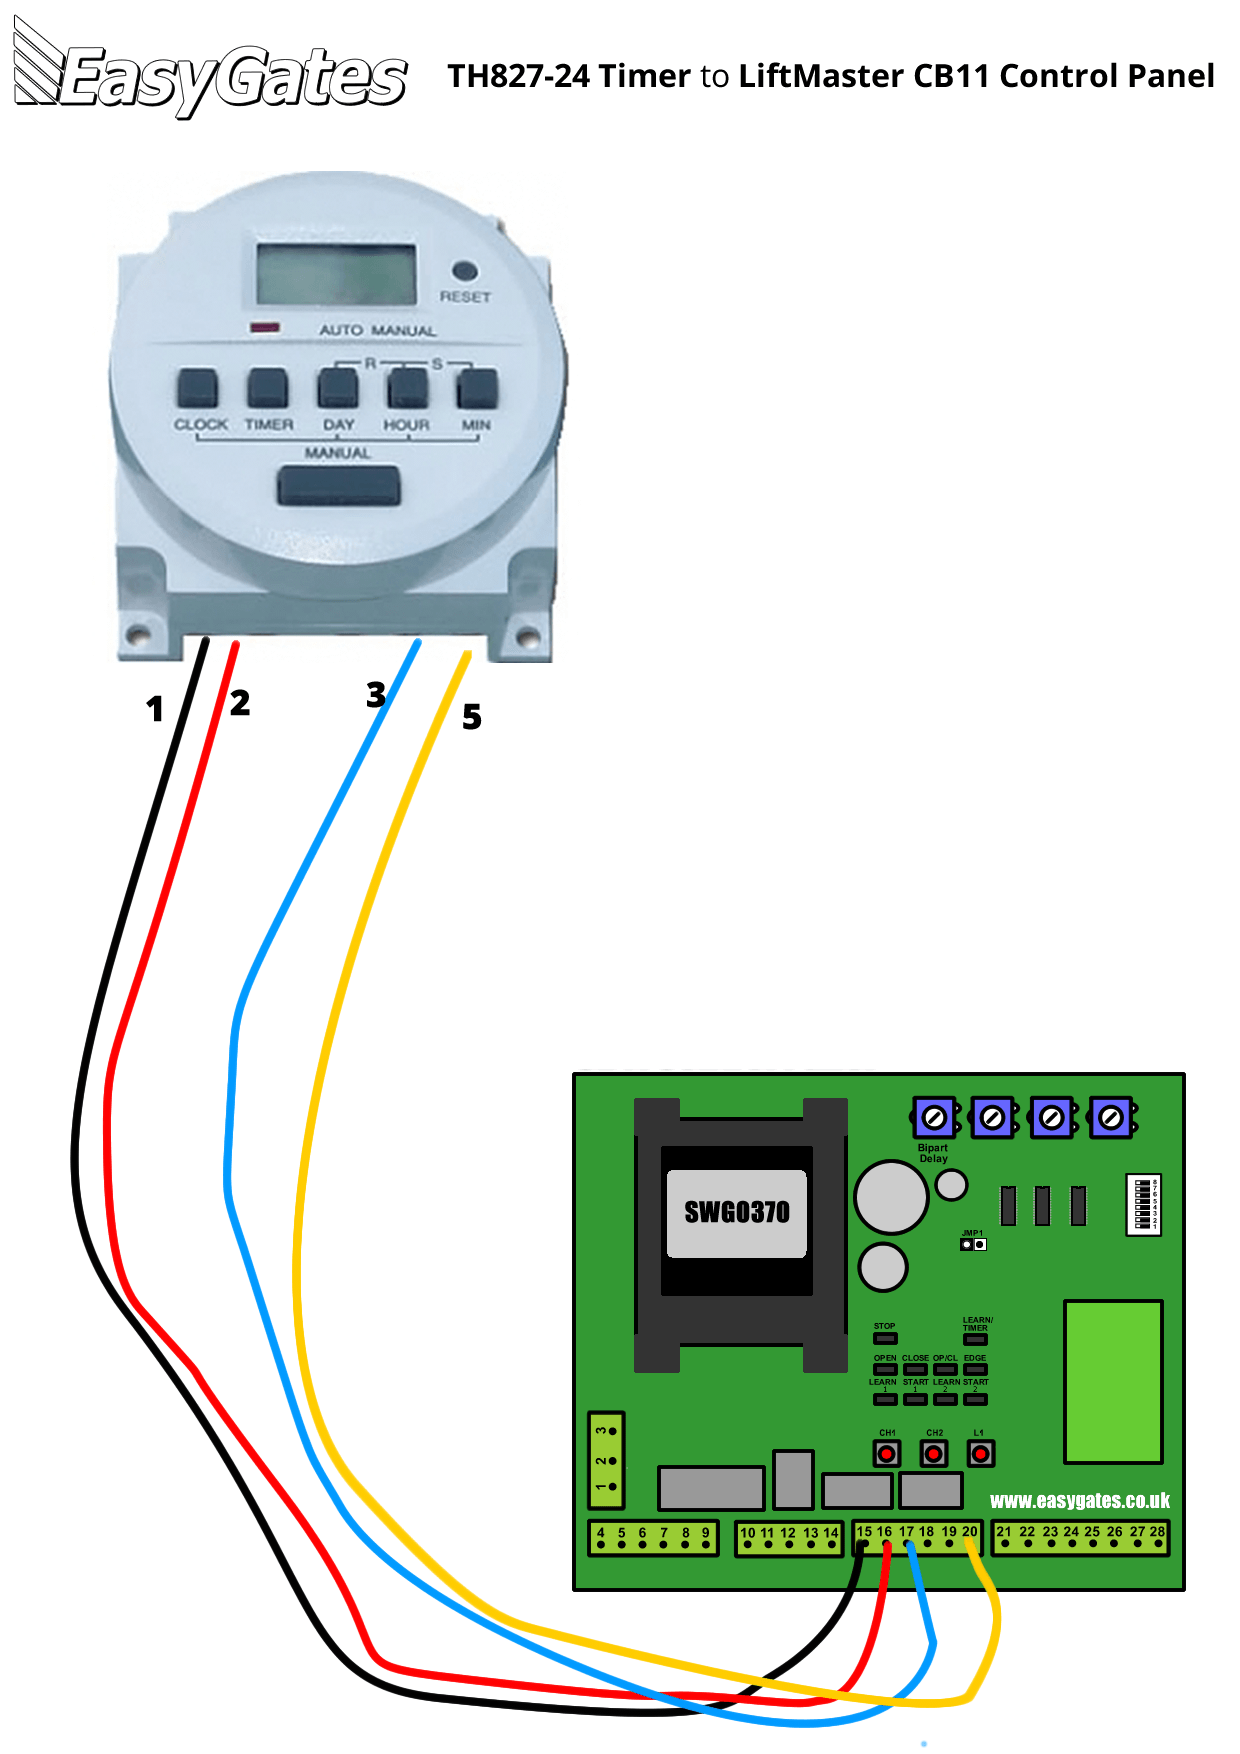 wiring diagram for connecting th827 24 timer to liftmaster cb11 rh manuals easygates co uk Lift Master Garage Door Wire Schematics liftmaster wiring diagram 1/3 hp